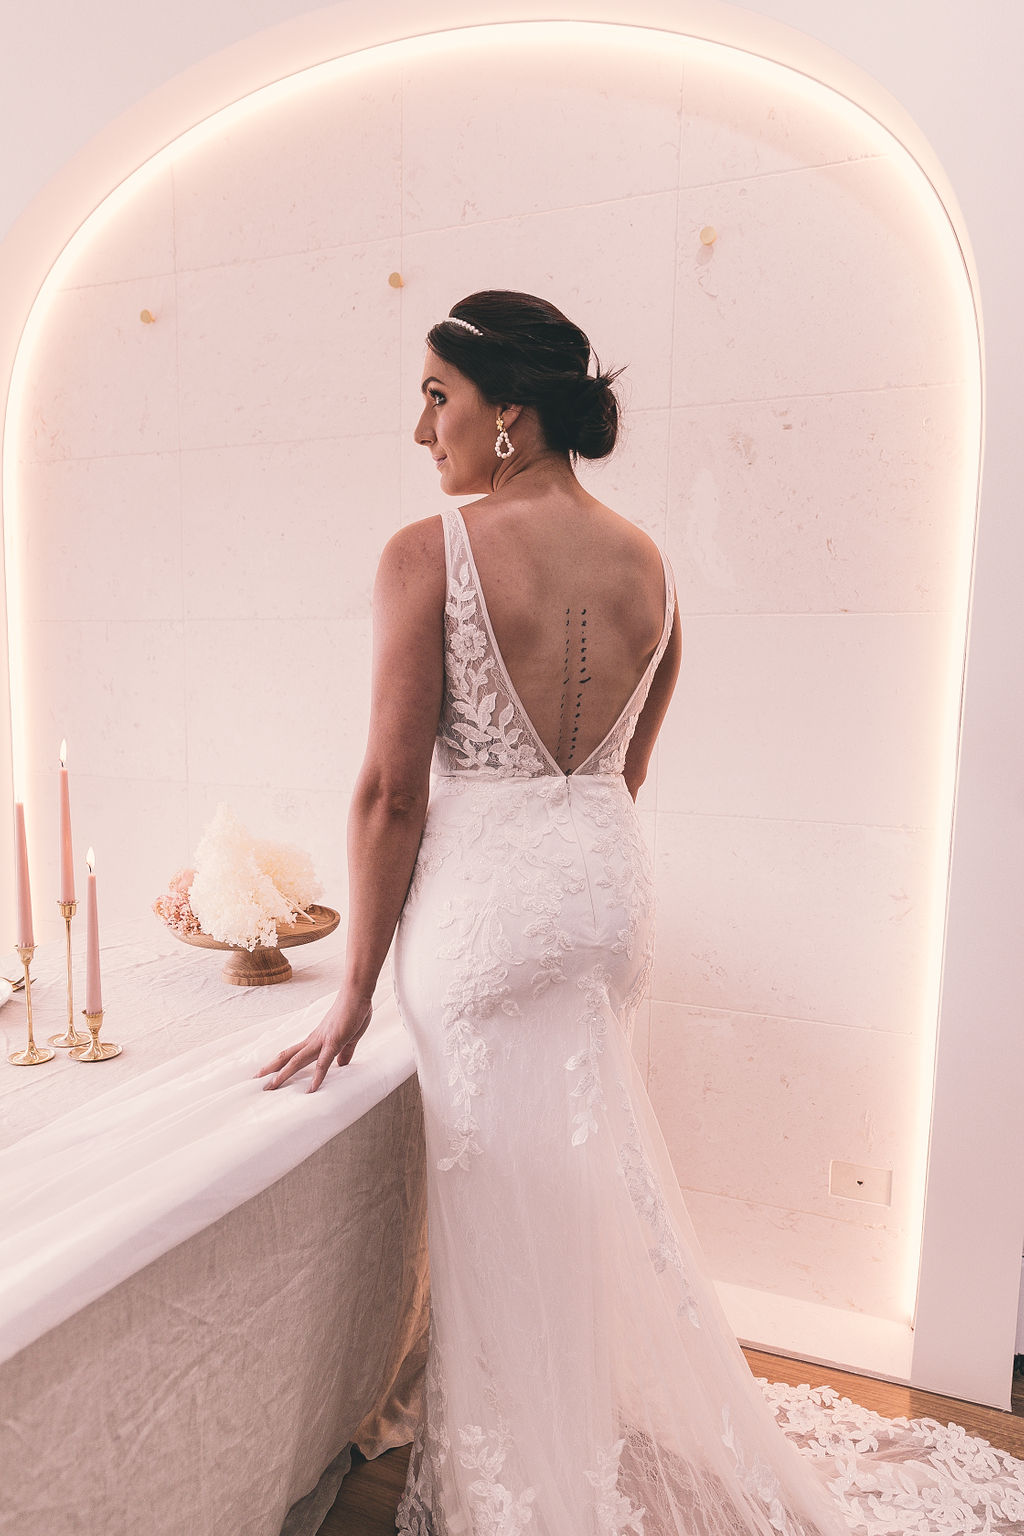 images by jessica witkamp boho bridal gowns wedding dresses the entrance nsw blush pink table styling cake